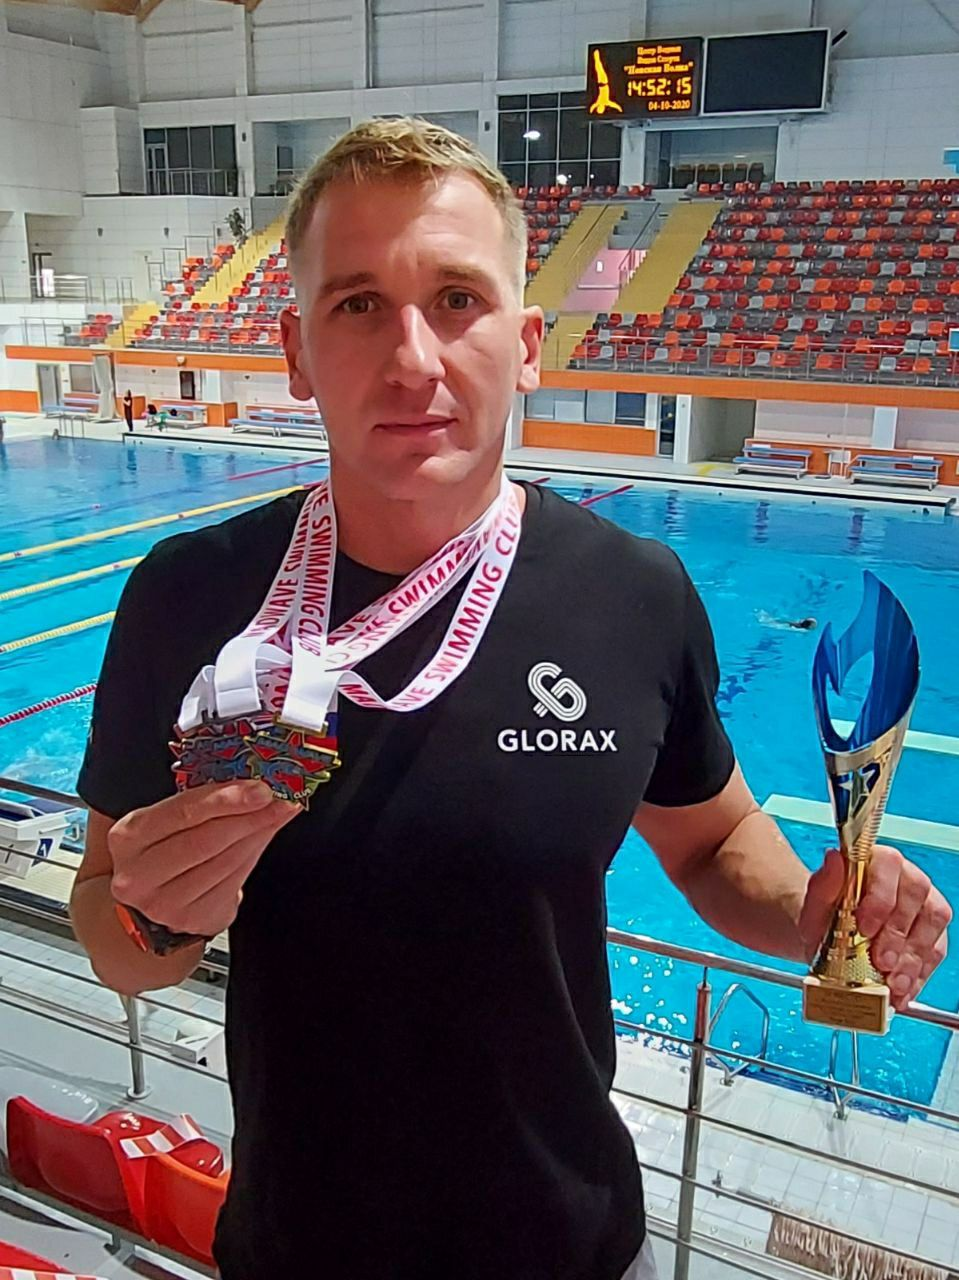 Glorax Life Swimmer Wins 5 Medals at International Tournament